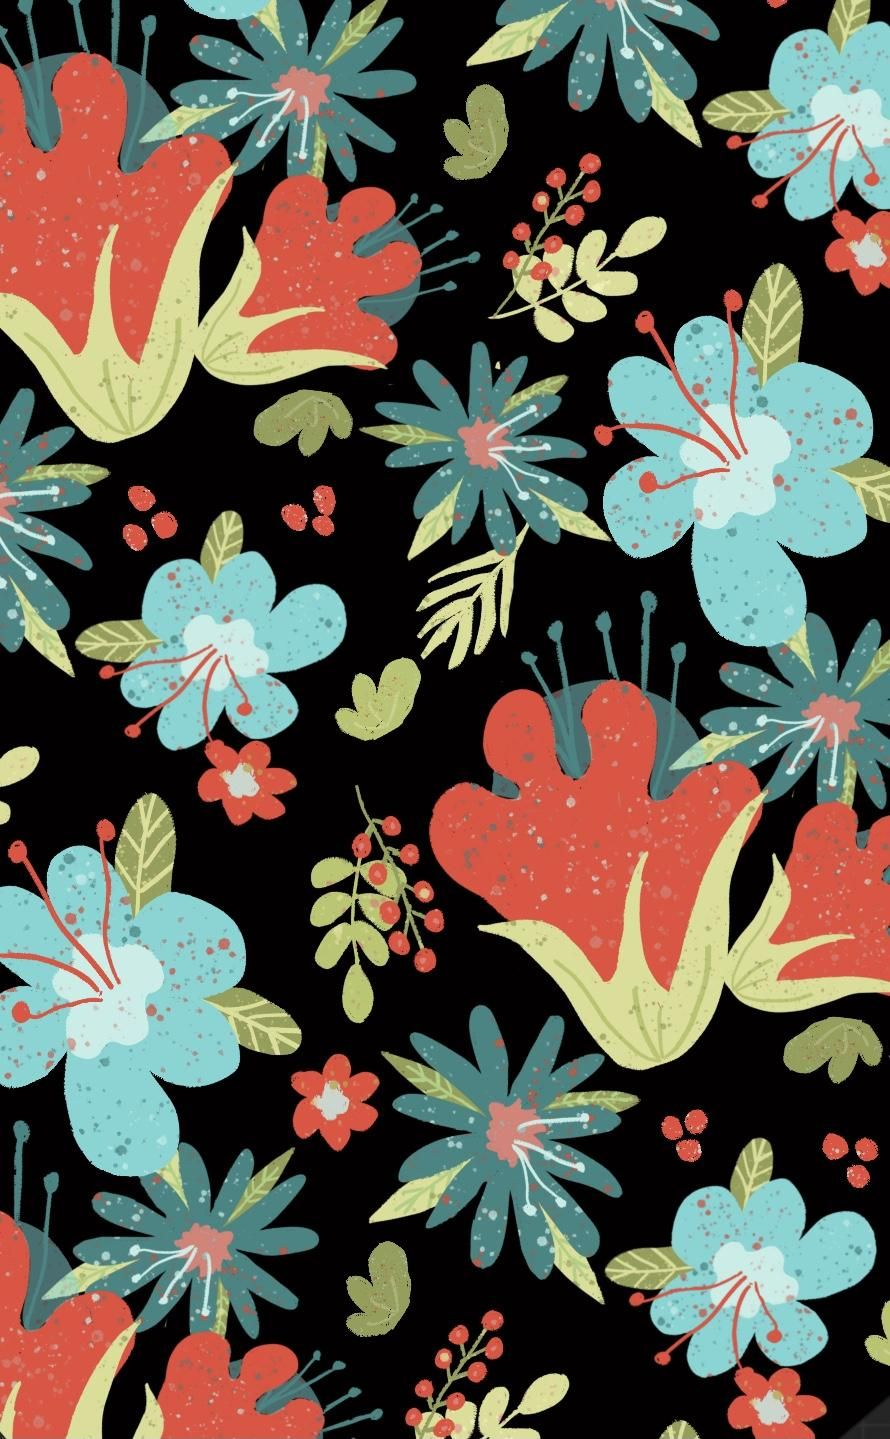 Floral Fantasy repeat pattern - image 1 - student project